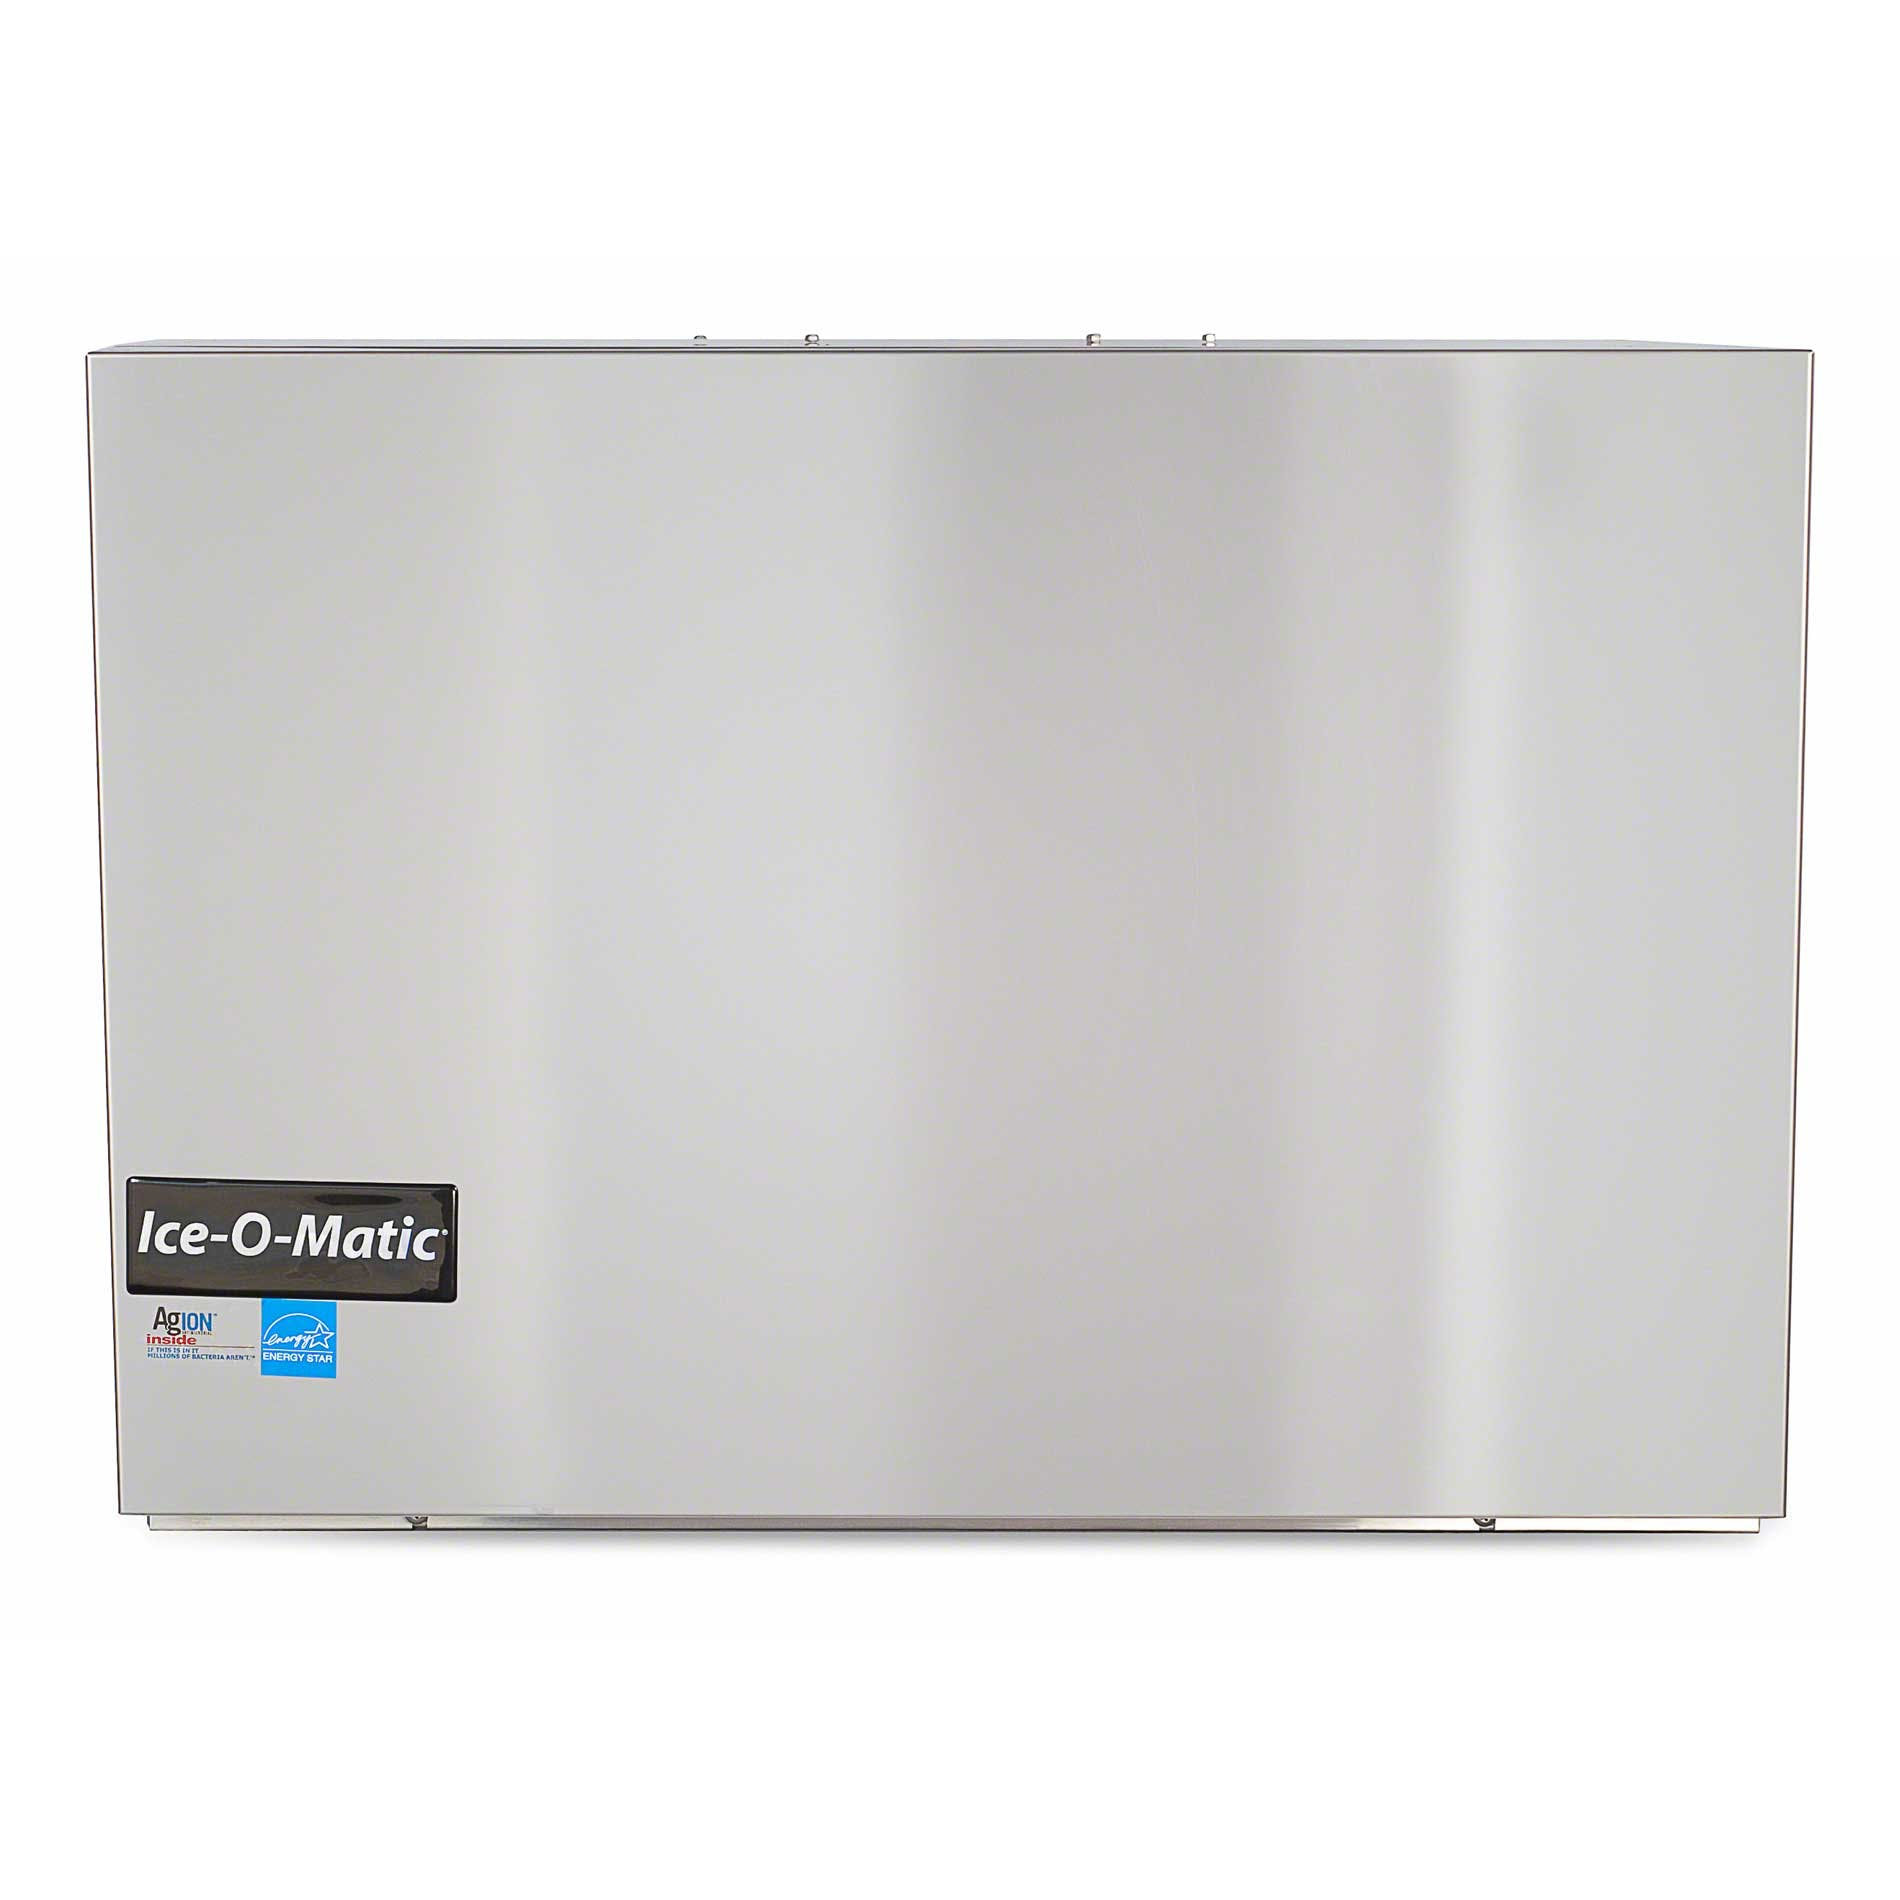 Ice-O-Matic - ICE1506HR 1432 lb Half Cube Ice Machine - sold by Food Service Warehouse